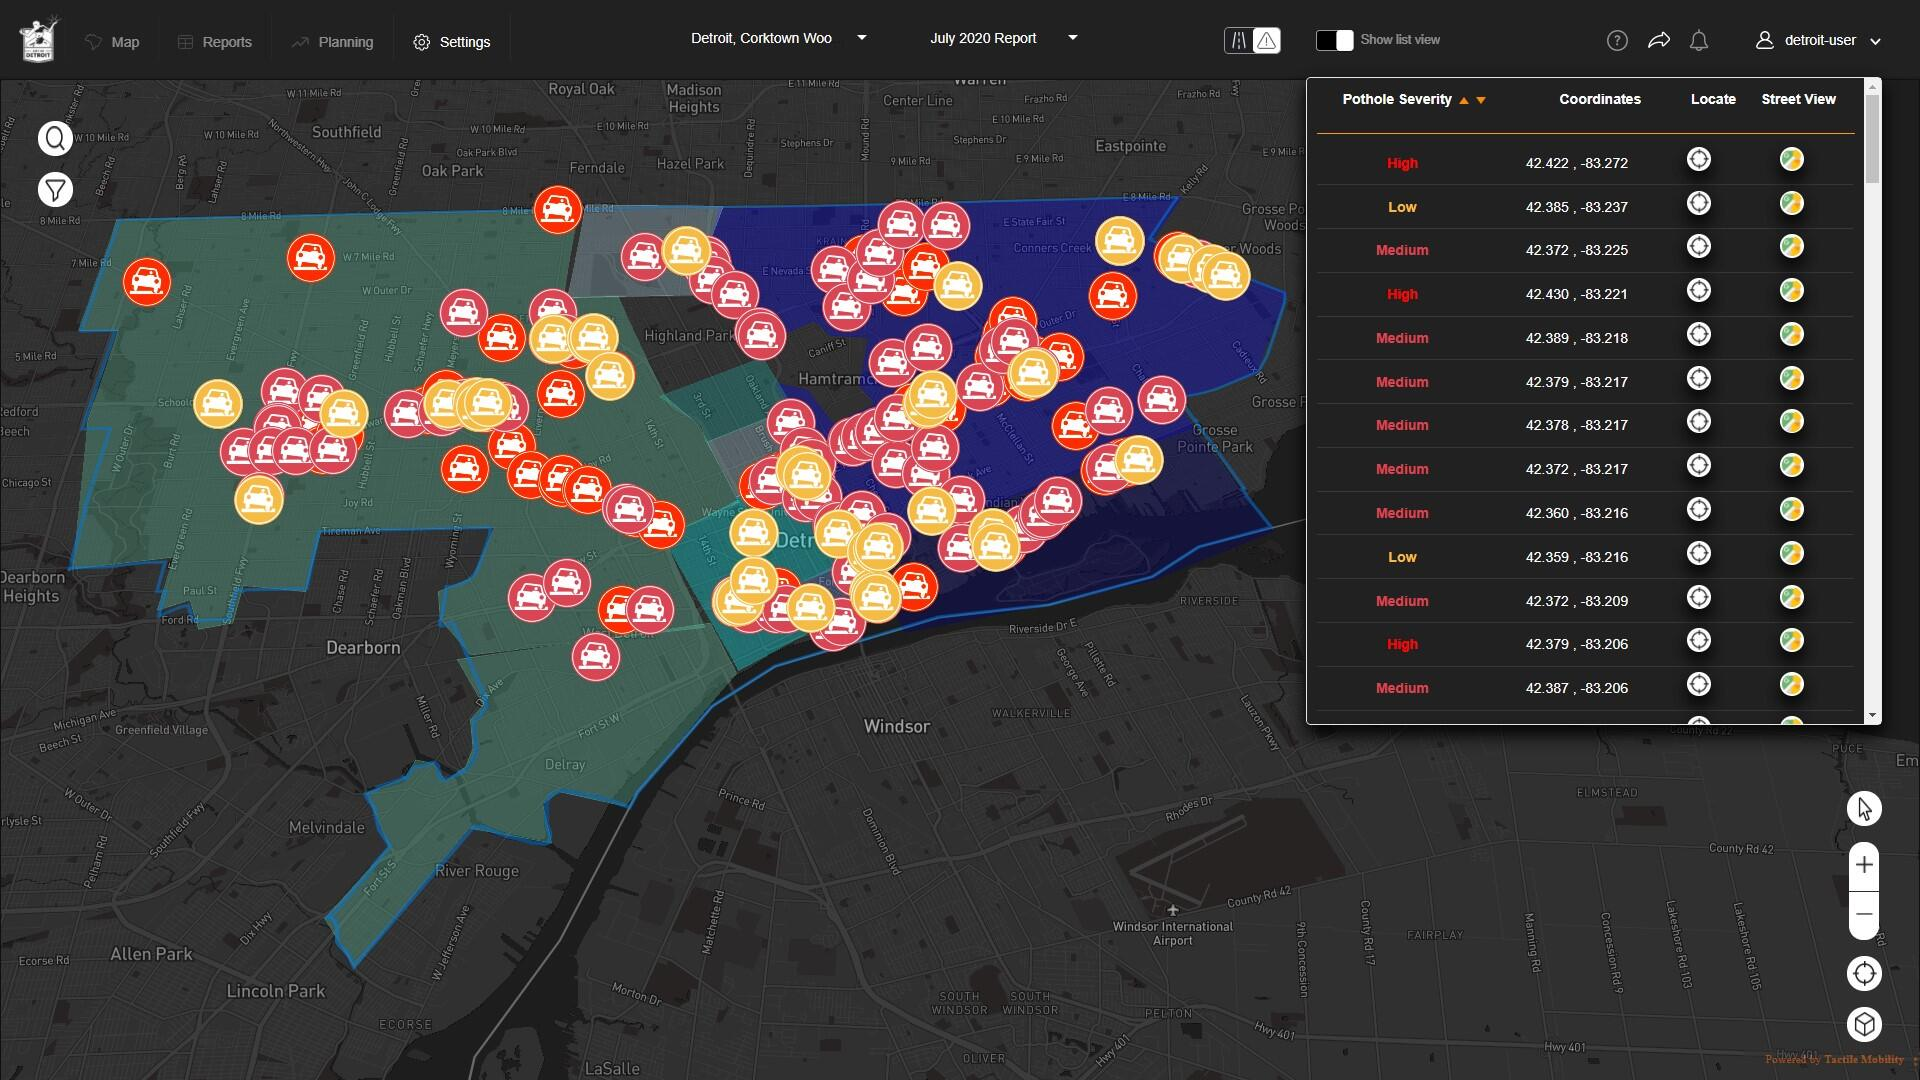 With a map that shows the locations and severity of potholes - generated from tactile data transmitted from vehicles – road agencies can identify new and deteriorating potholes and dispatch maintenance teams in a timely fashion. Similar maps are usually created manually based on reports from citizens and city workers.